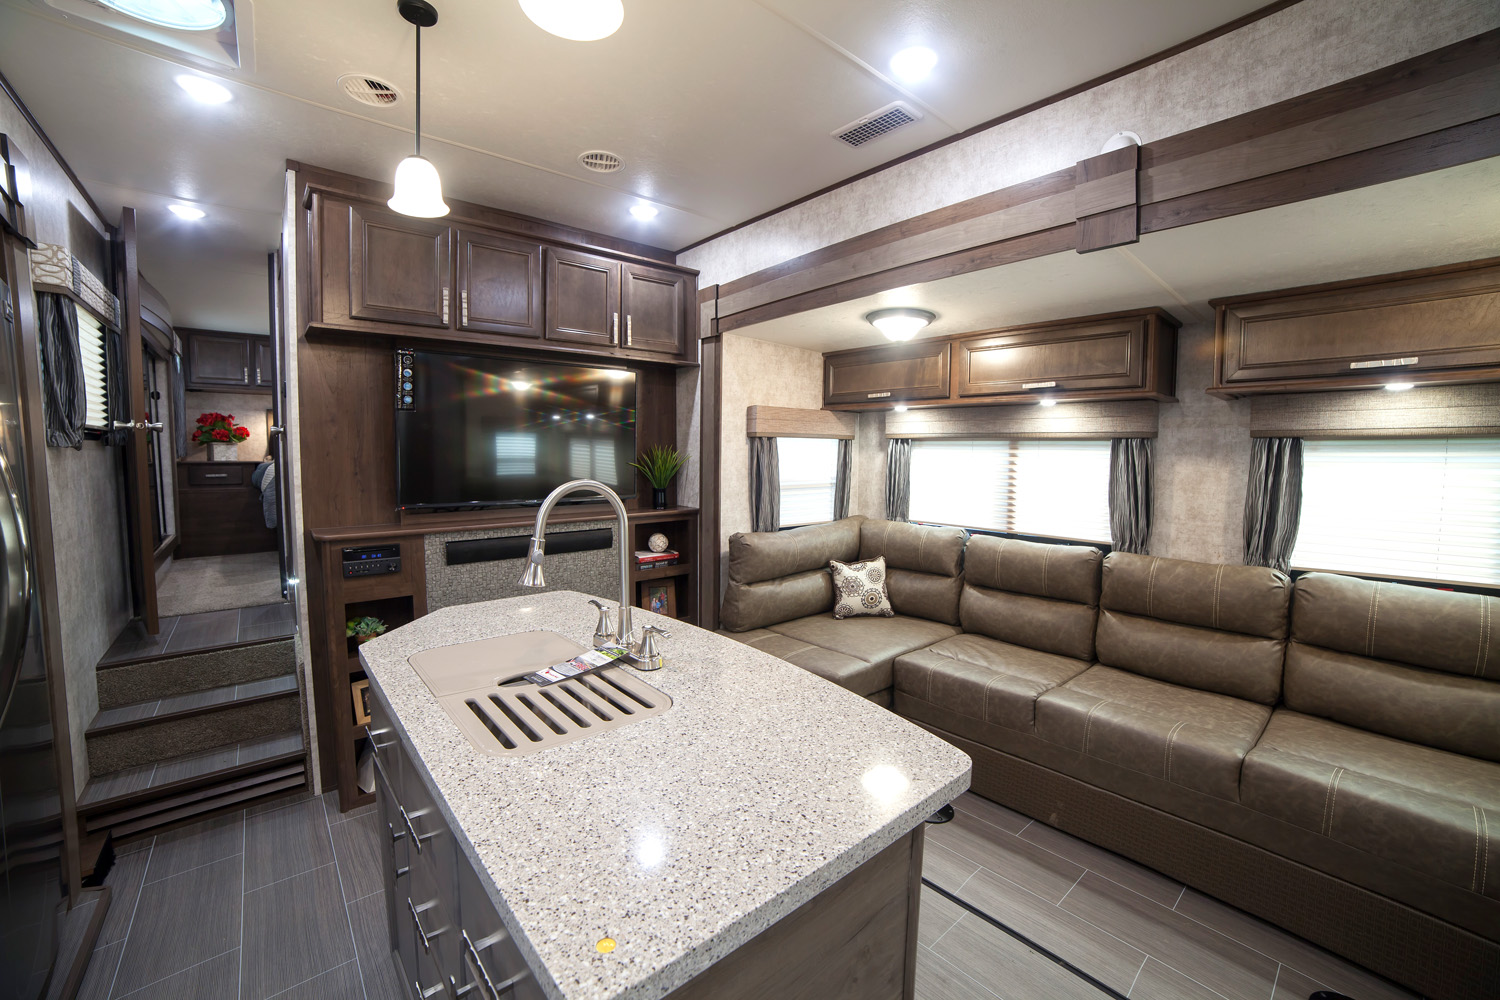 Open range roamer 376fbh all seasons rv streetsboro ohio rv dealer for Front living room fifth wheel rv for sale